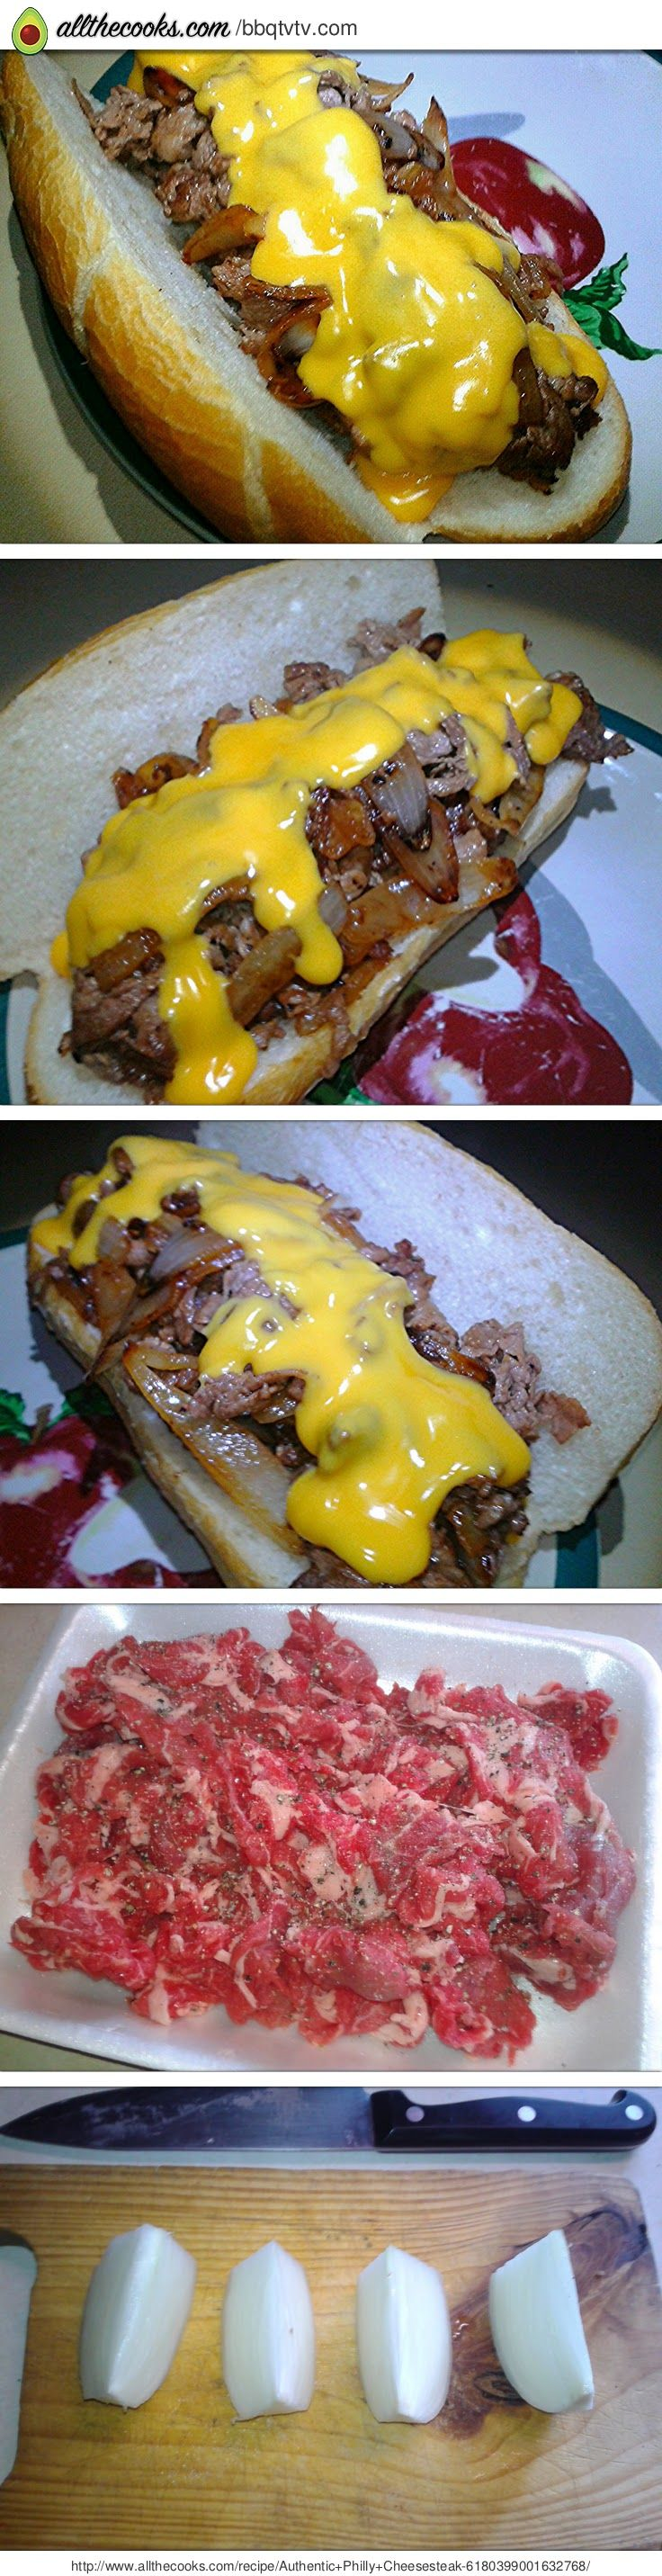 "Authentic Philly Cheesesteak! 5.00 stars, 8 reviews. ""Beef and cheesy goodness. An American classic that you can now make anywhere in the world with this super secret recipe."" @allthecooks #recipe"